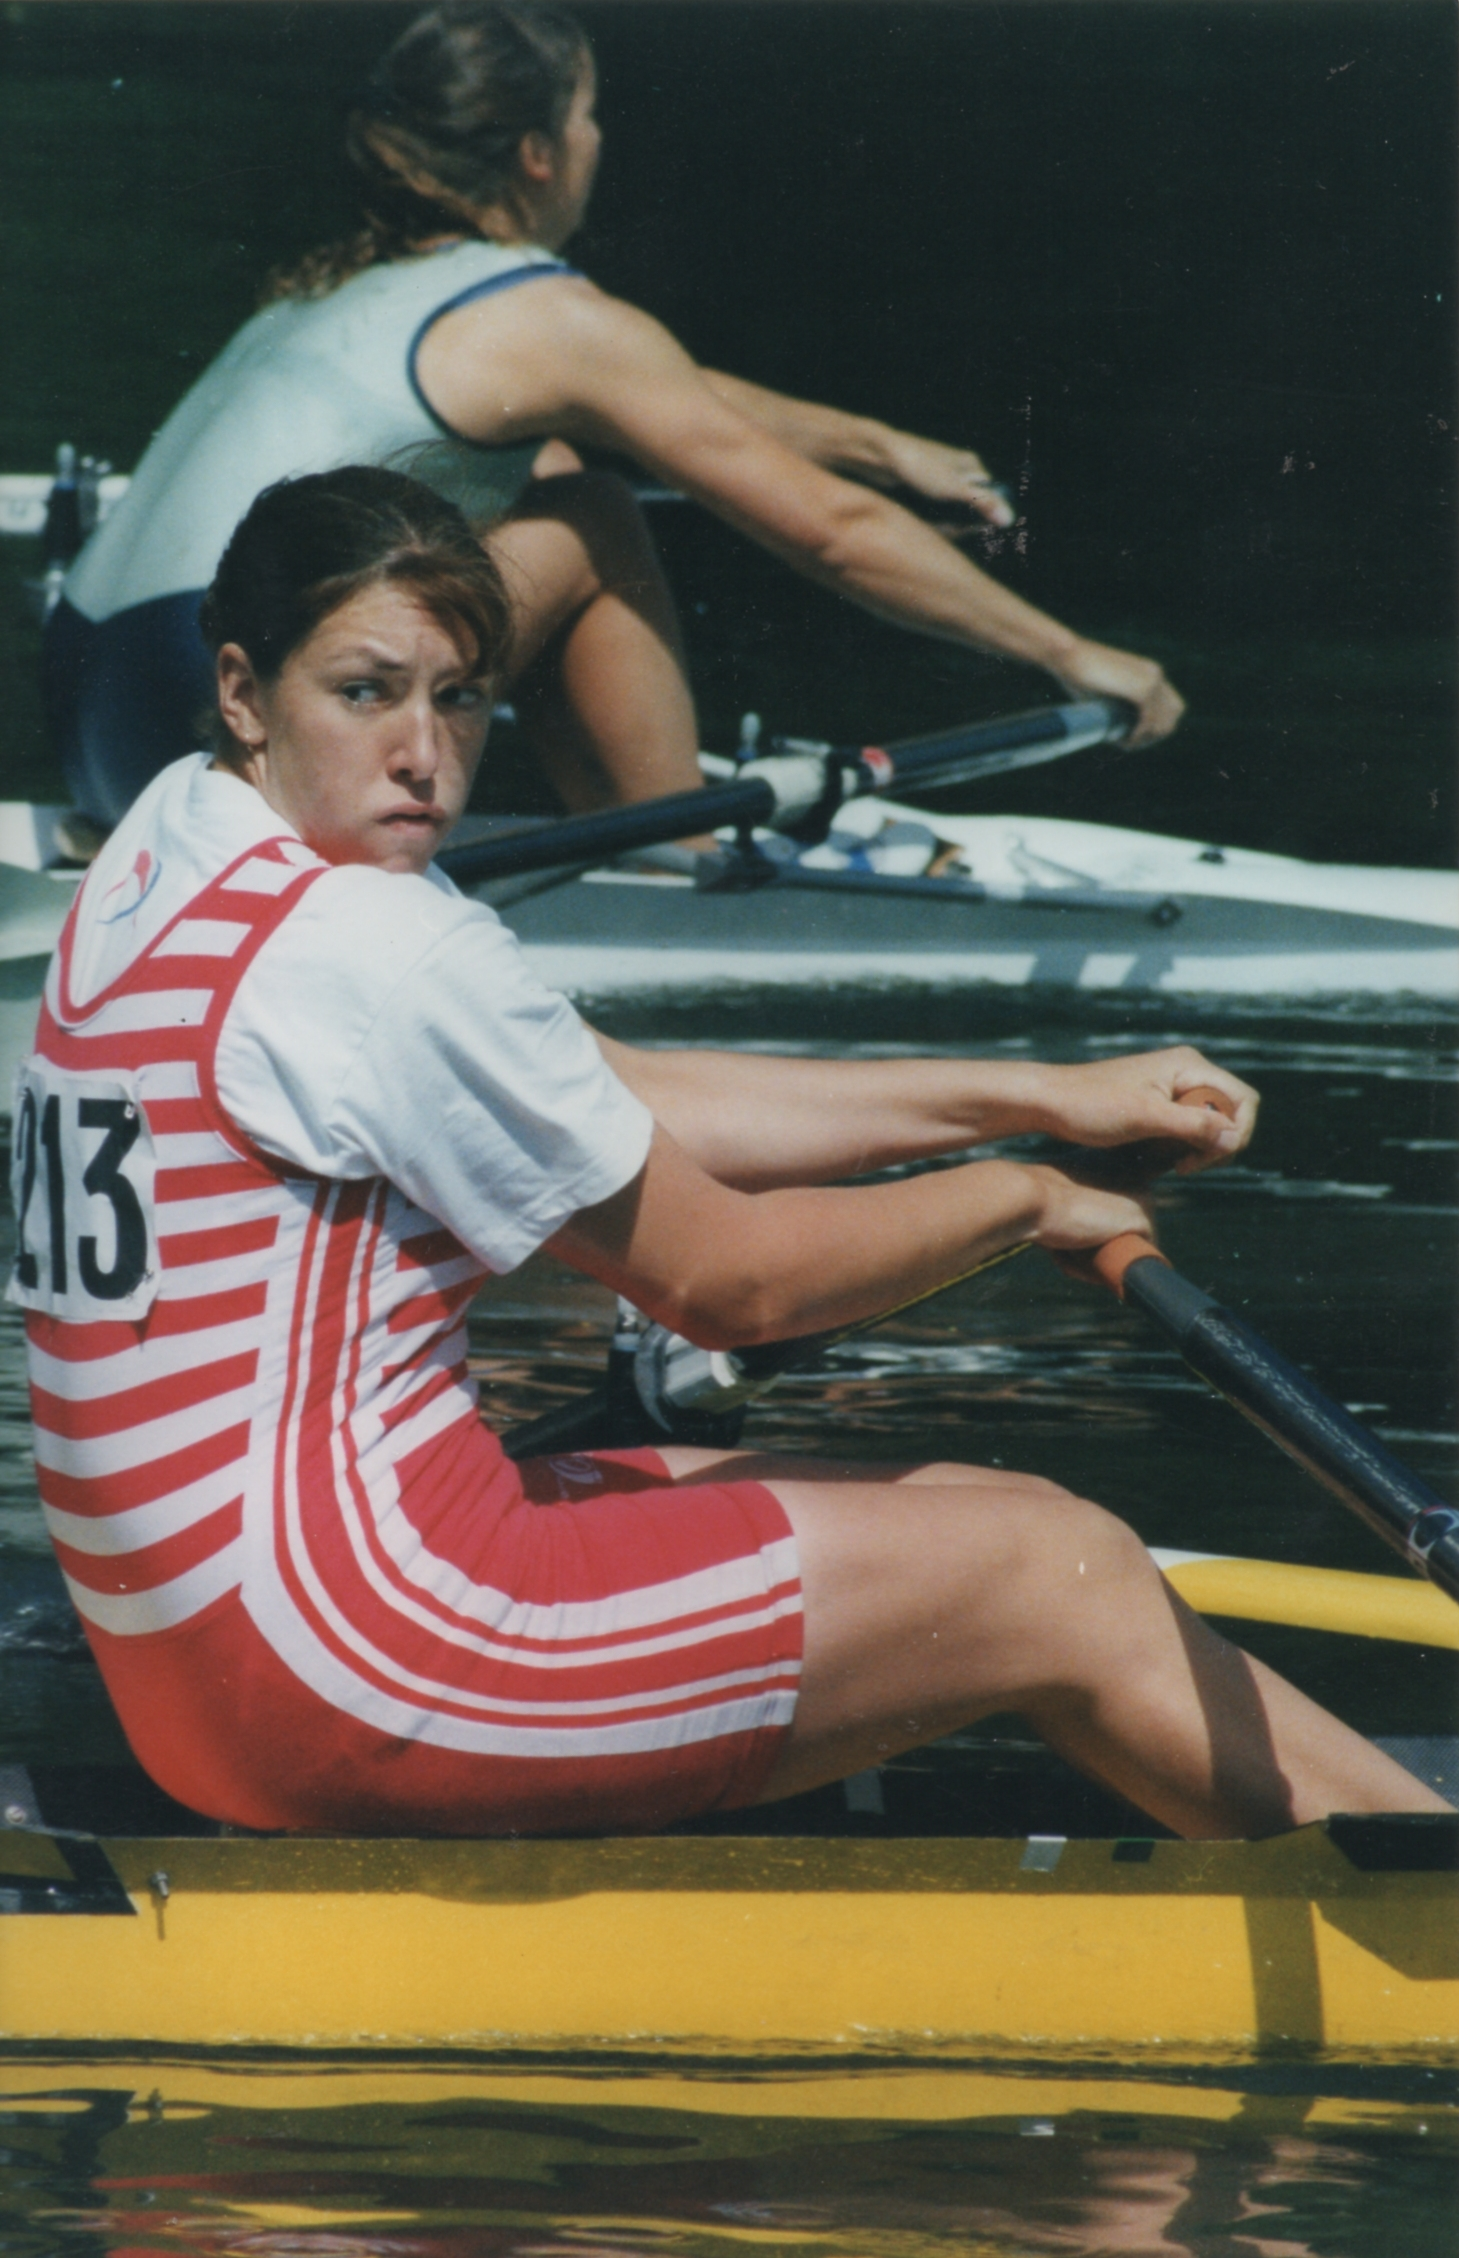 Woman in red and white striped Kingston RC kit just leading and looking round